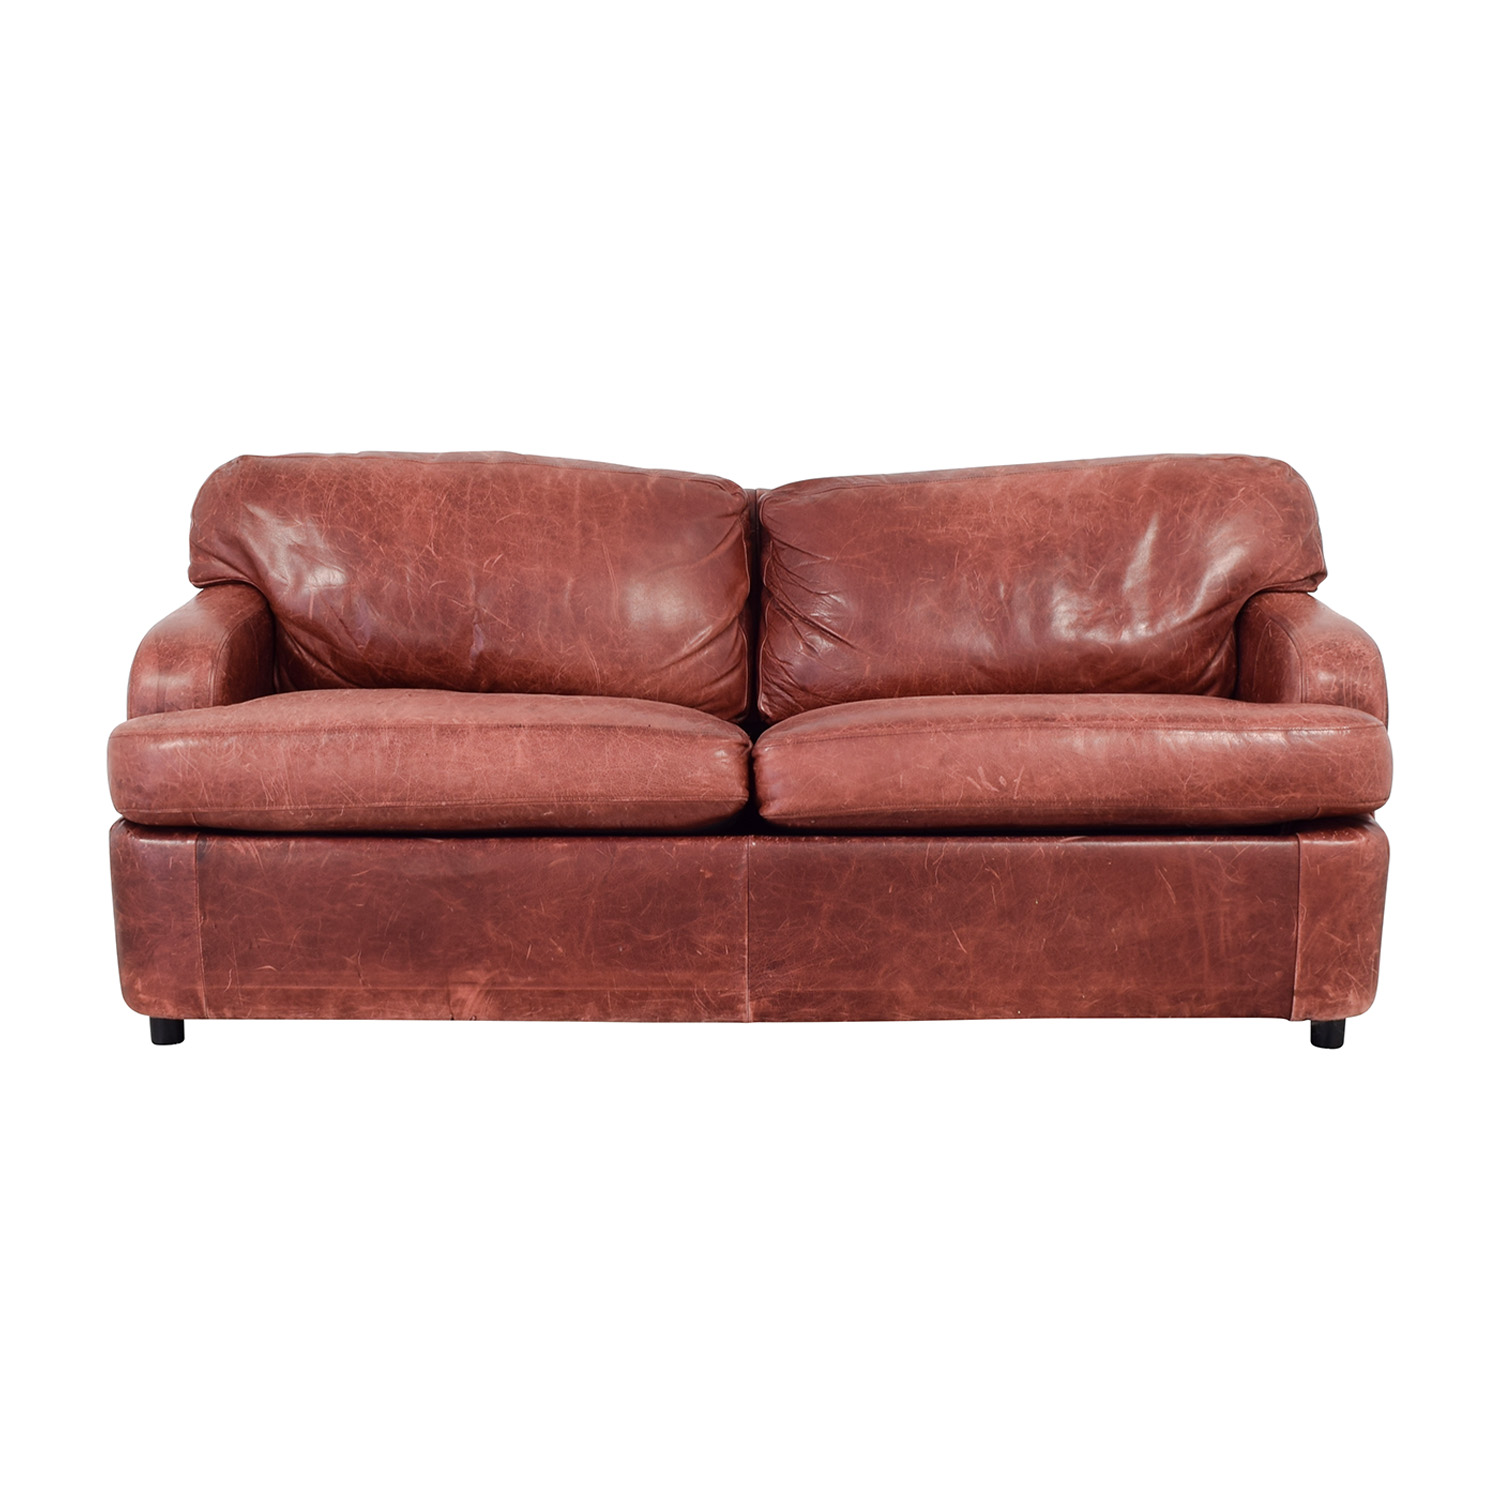 61% OFF - Leather Sleeper Sofa / Sofas